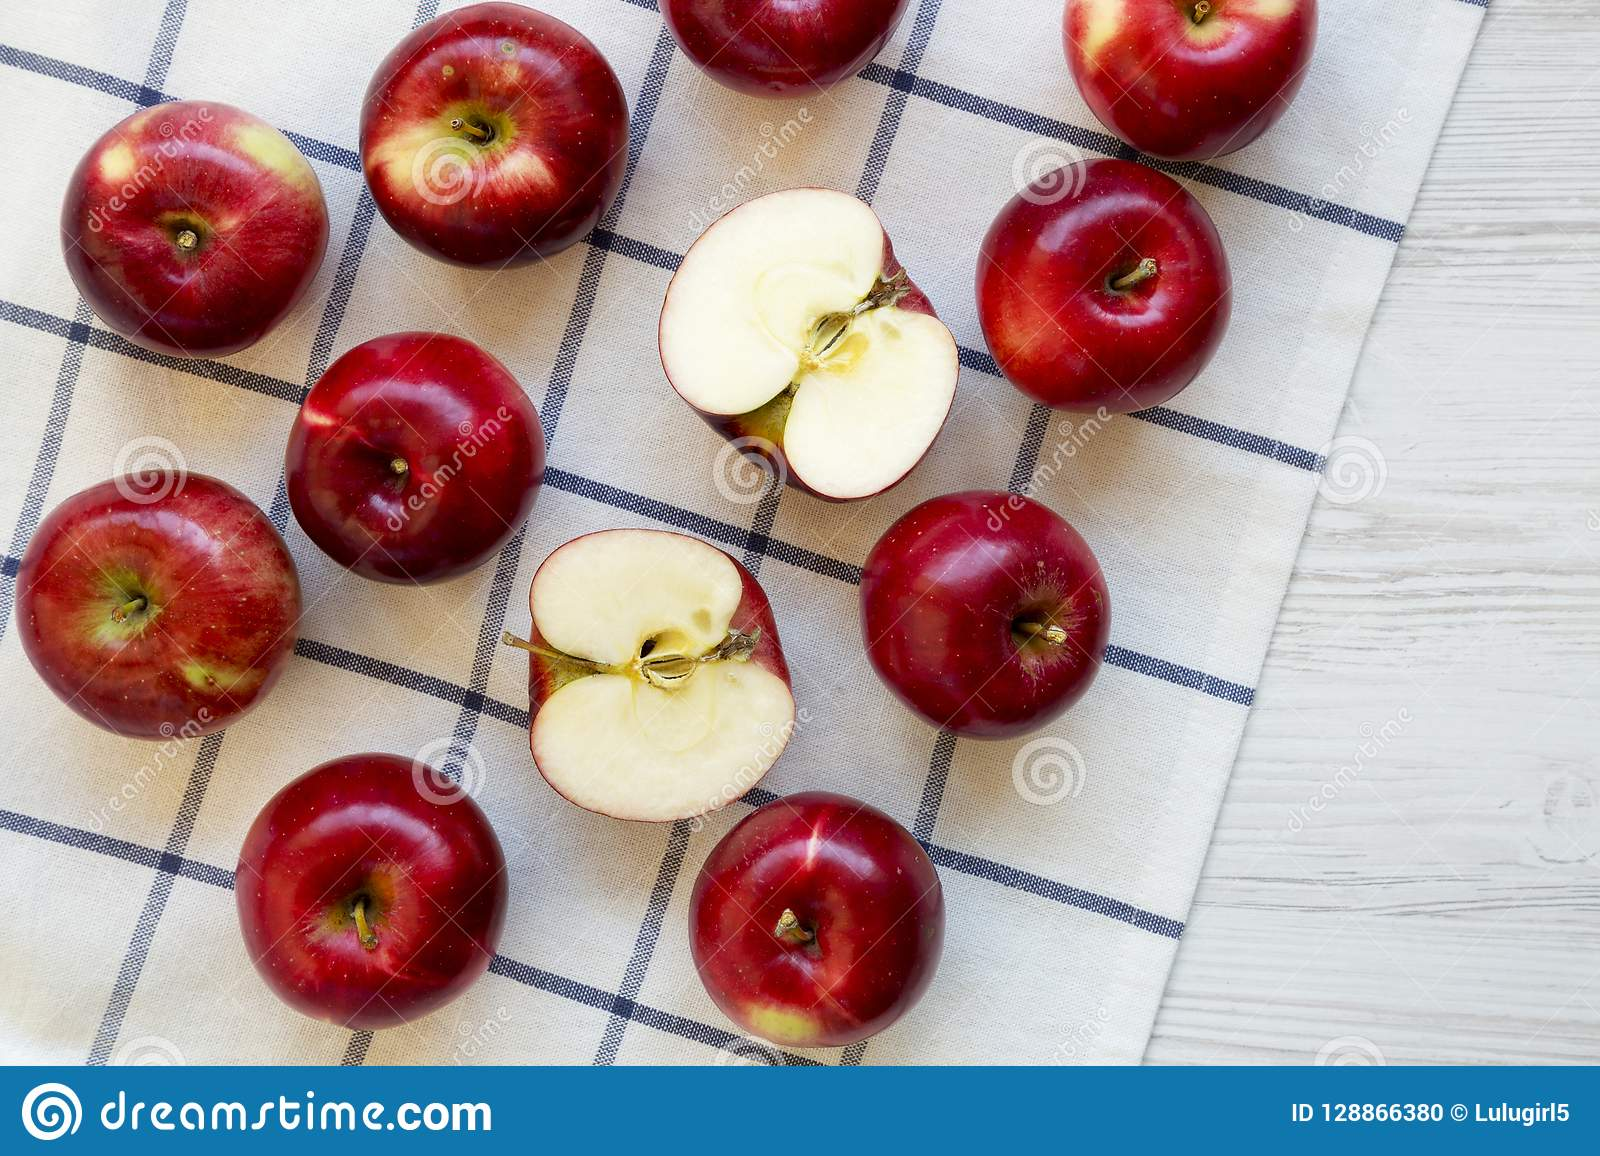 Fresh raw organic red apples on cloth over white wooden background, top view. Flat lay, from above, overhead